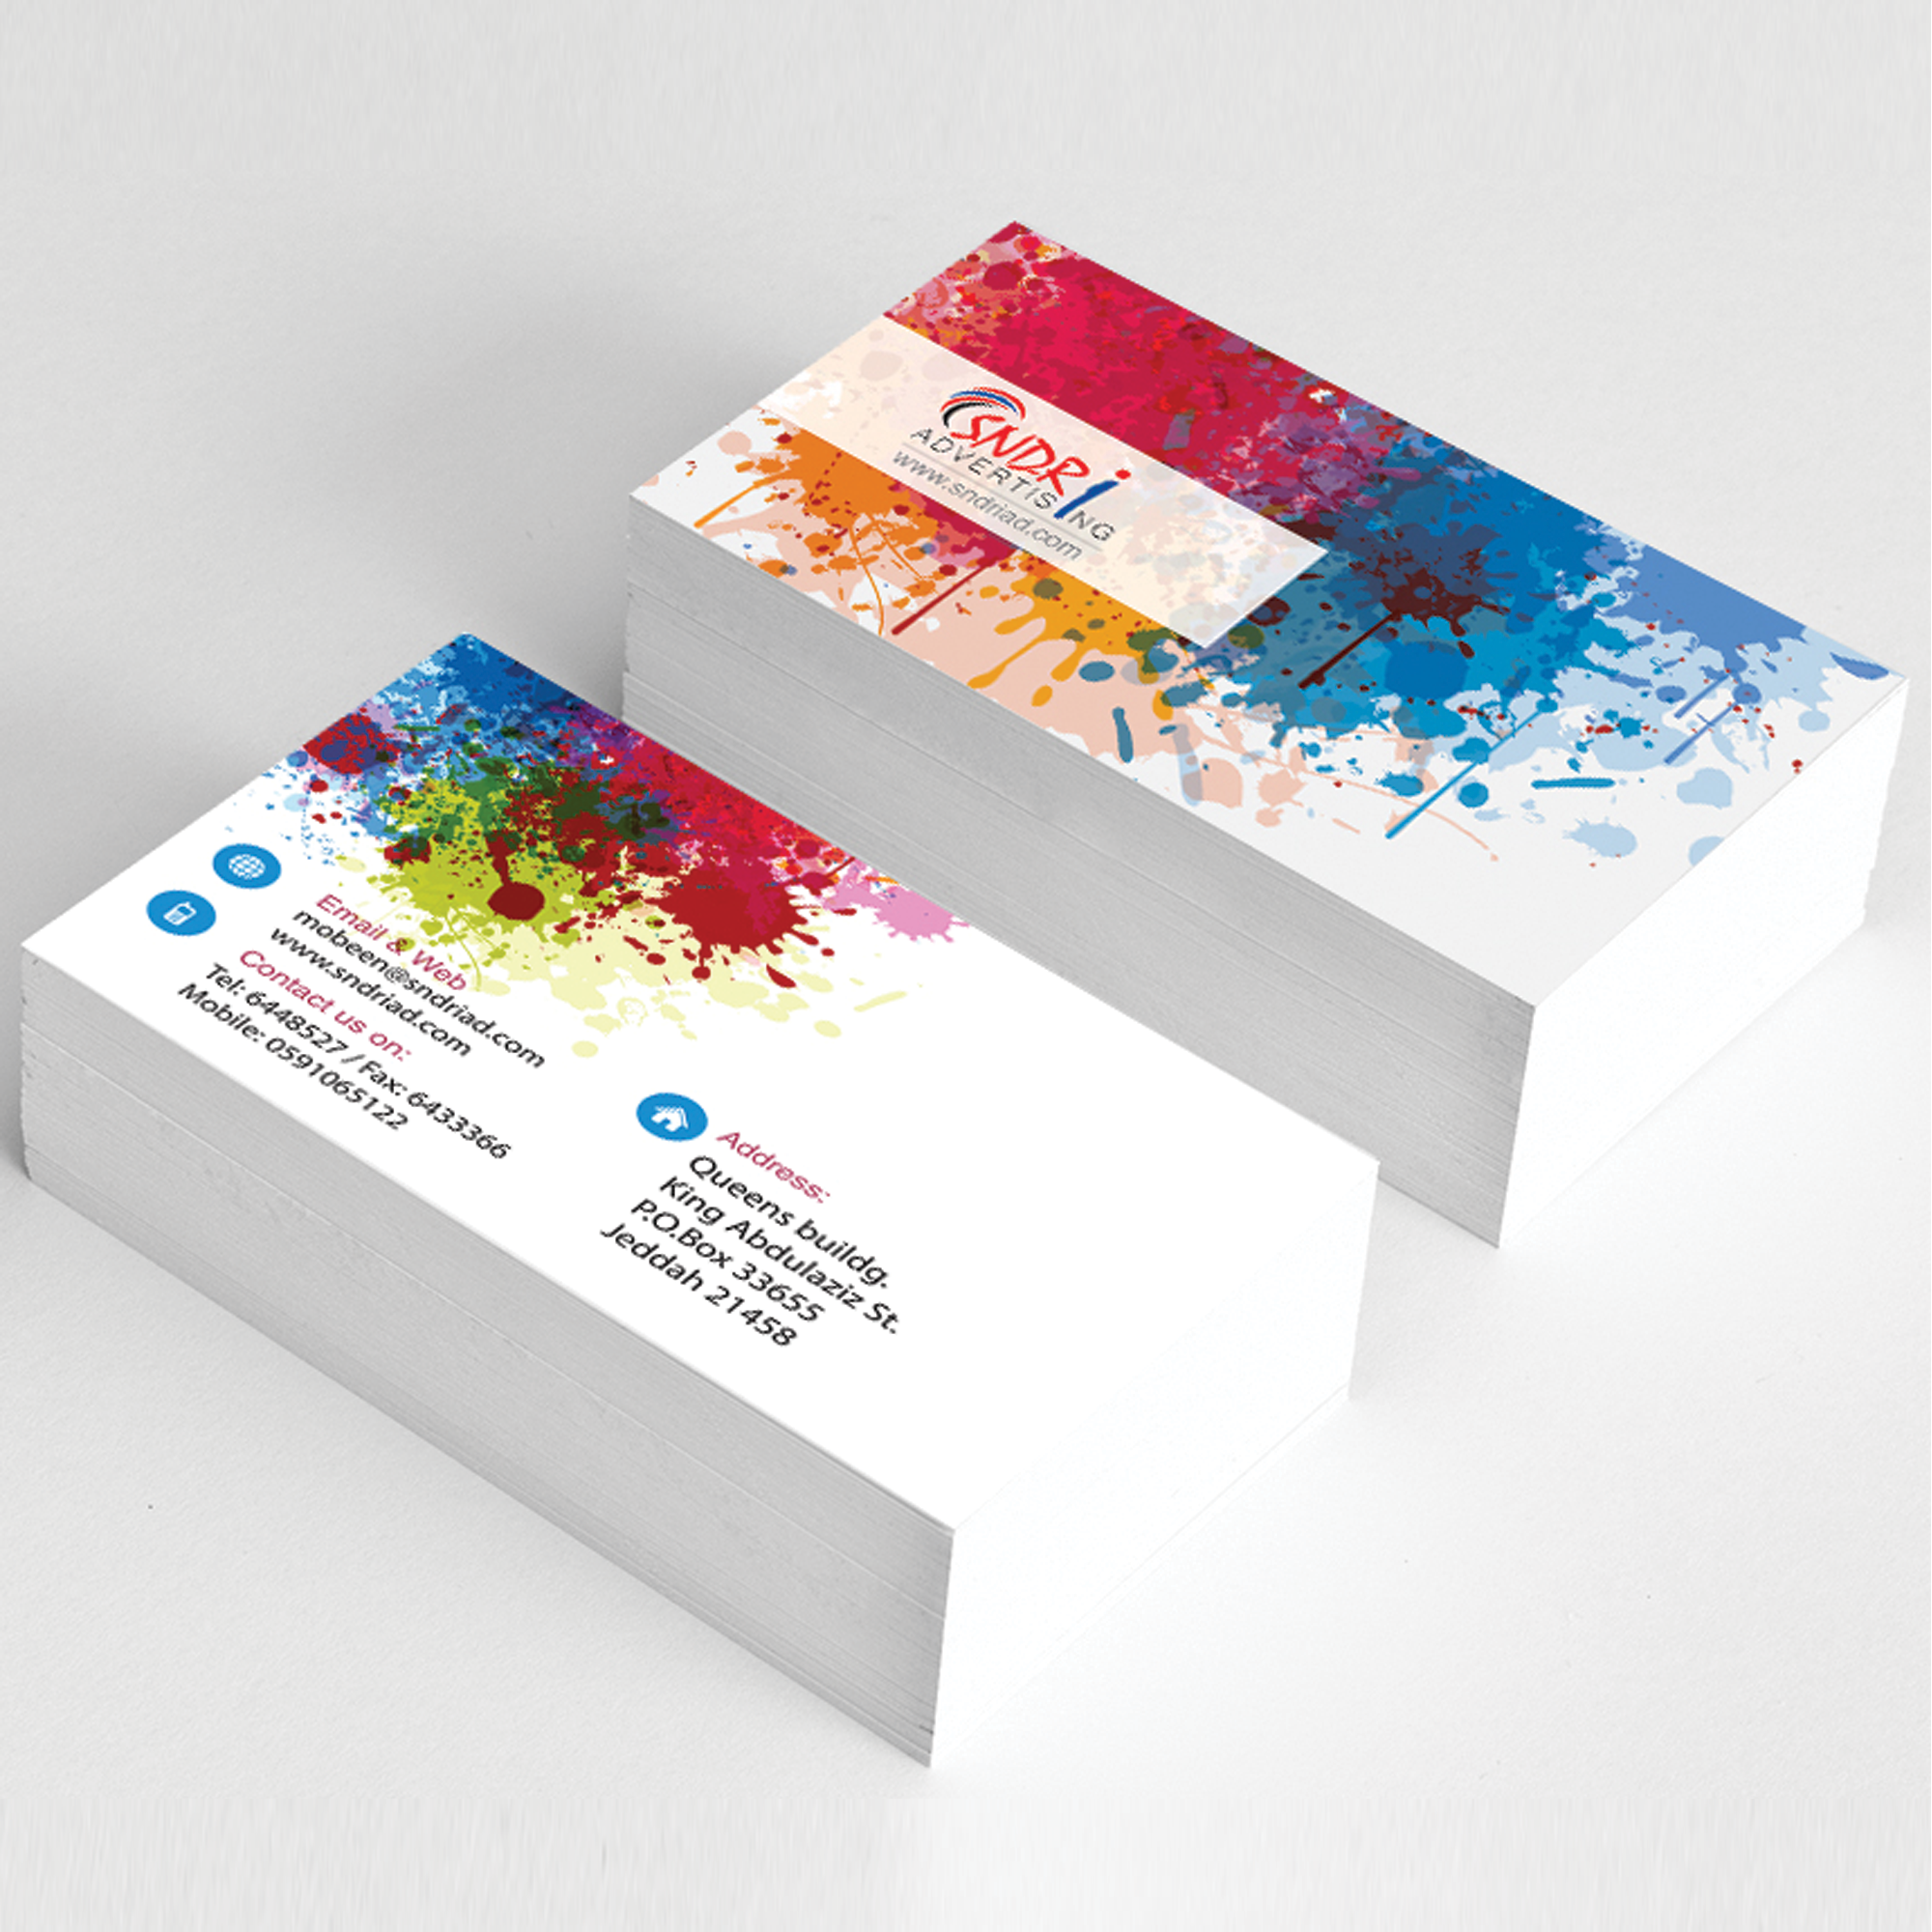 Corporate business card design print services we design all kind corporate business card design print services we design all kind of corporate business card design we have digital printers after design we print reheart Image collections